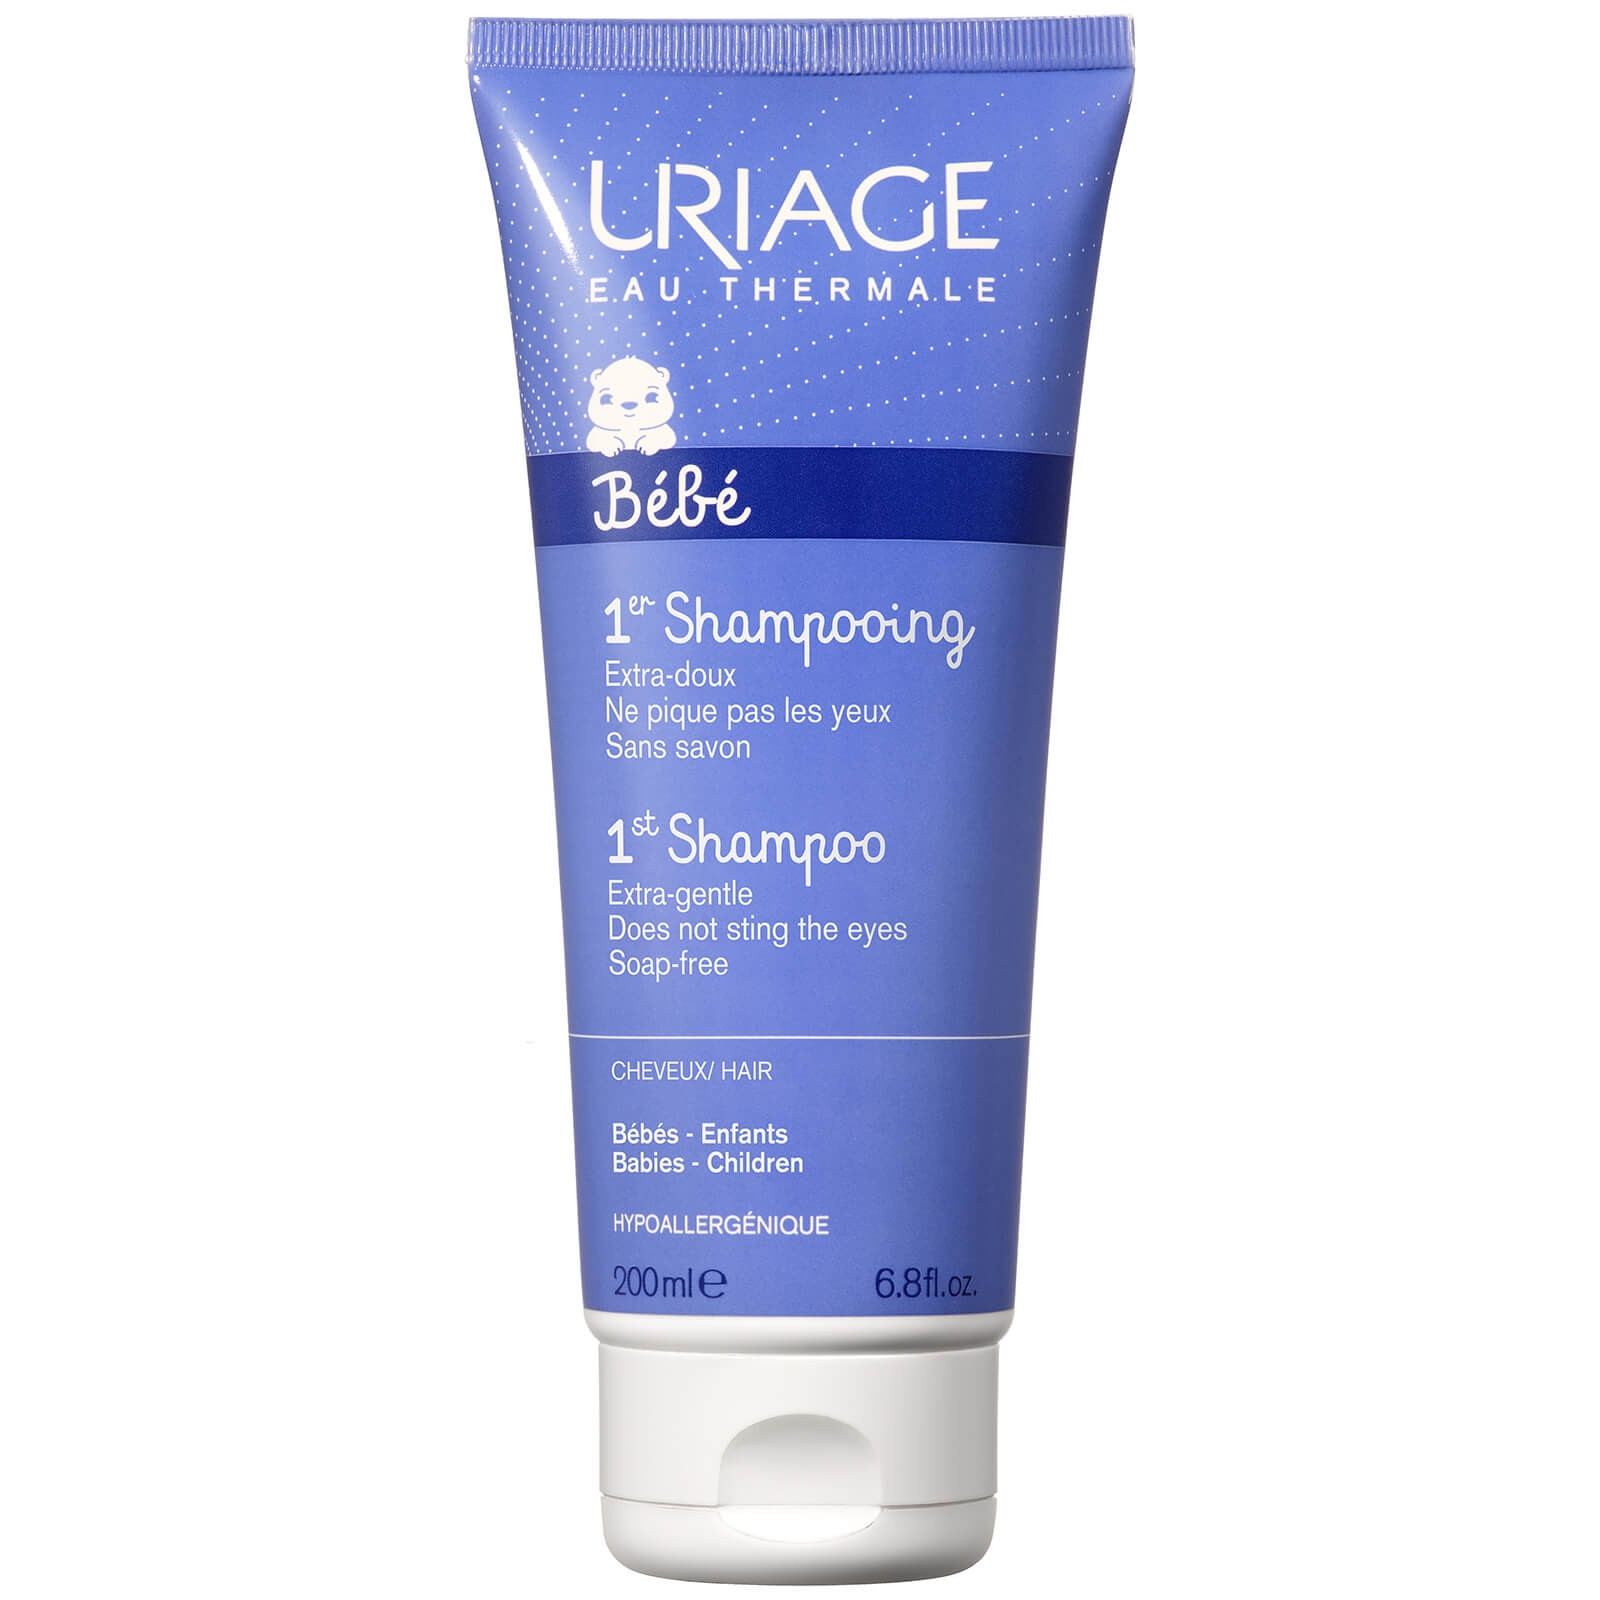 URIAGE 1ST SHAMPOO (200ml)